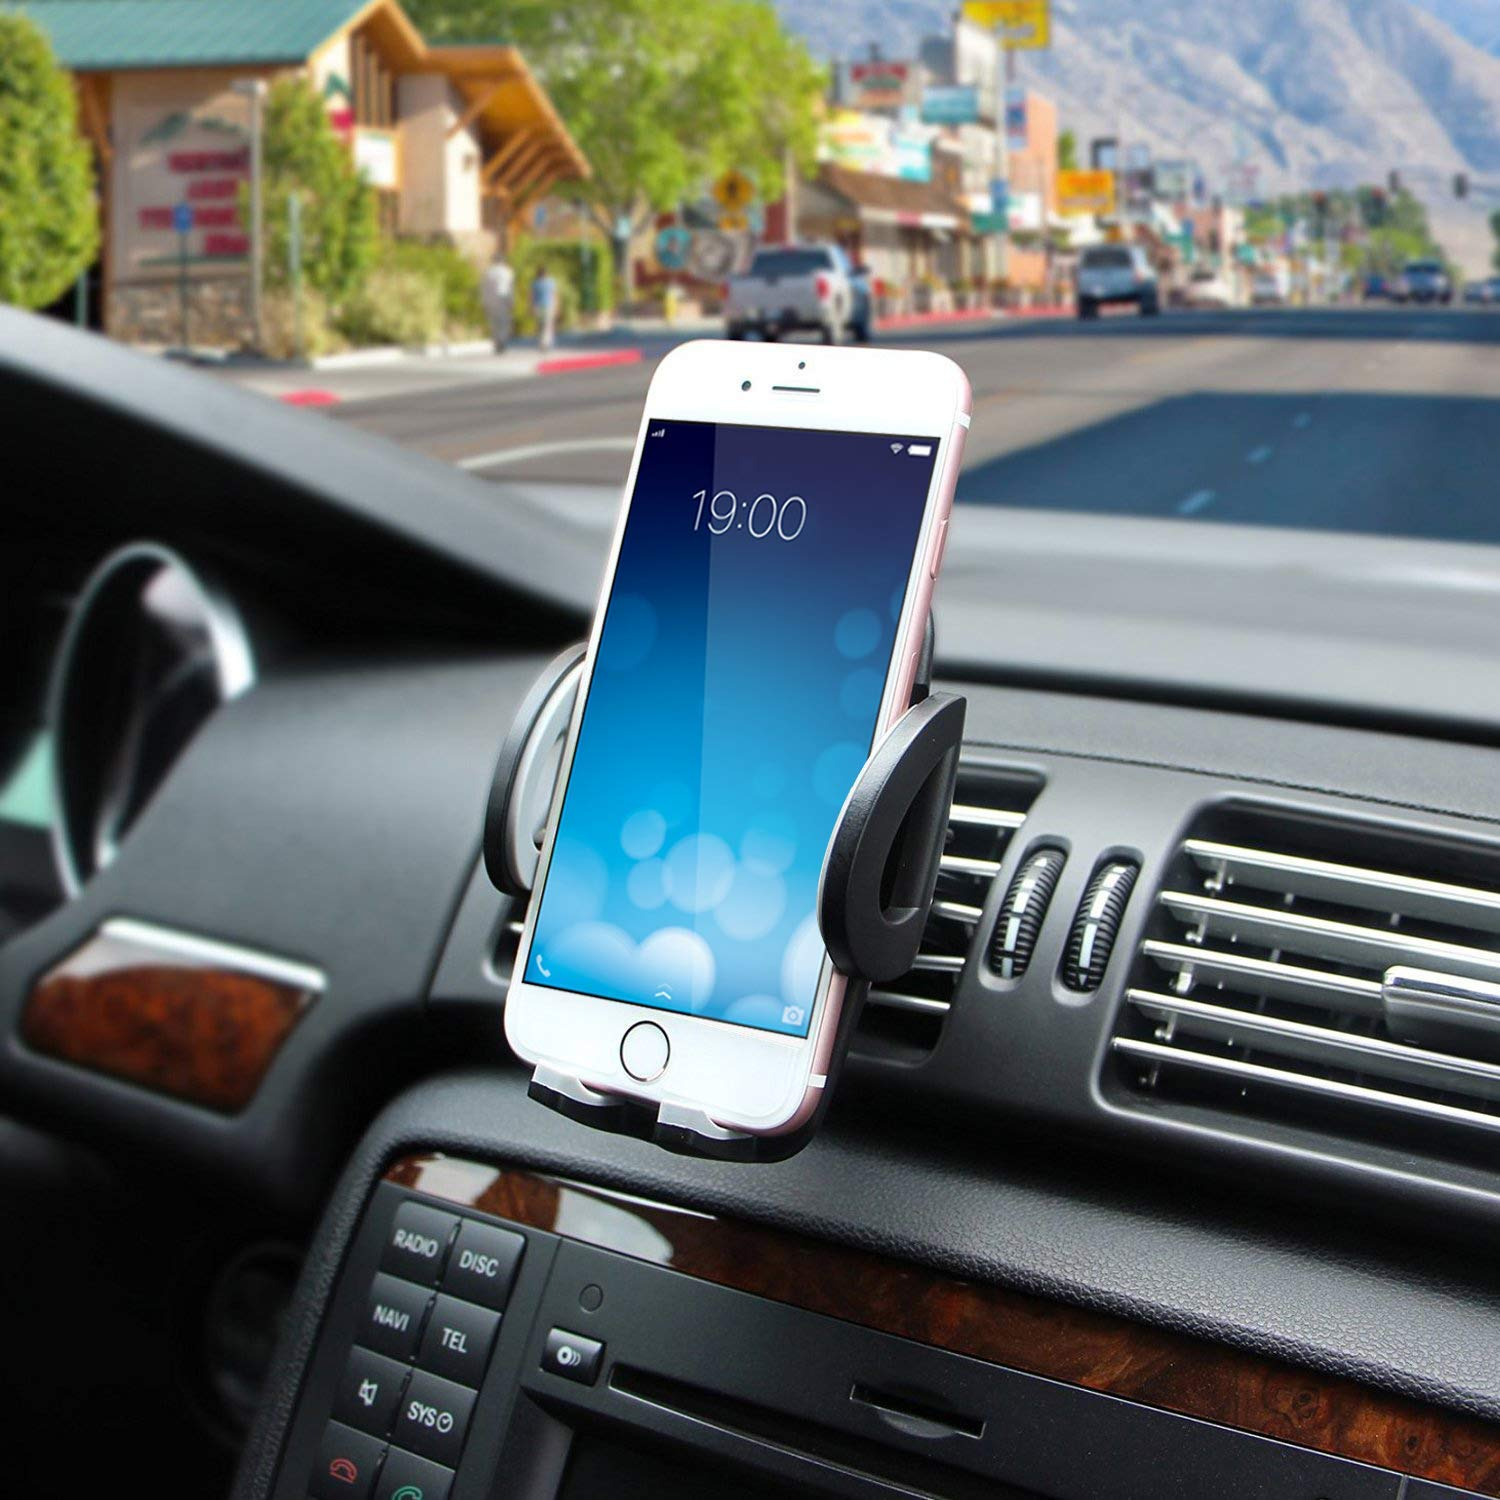 Windshield Dashboard Cradle for GPS iPhone XS Max XR 8Plus 8 7 7Plus 6 6Plus 5S 5 5C Samsung Galaxy S8 S7 Edge 6S Smartphones 12C-2314-Z Cell Phone Holder LotFancy Mobile Phone Car Mount